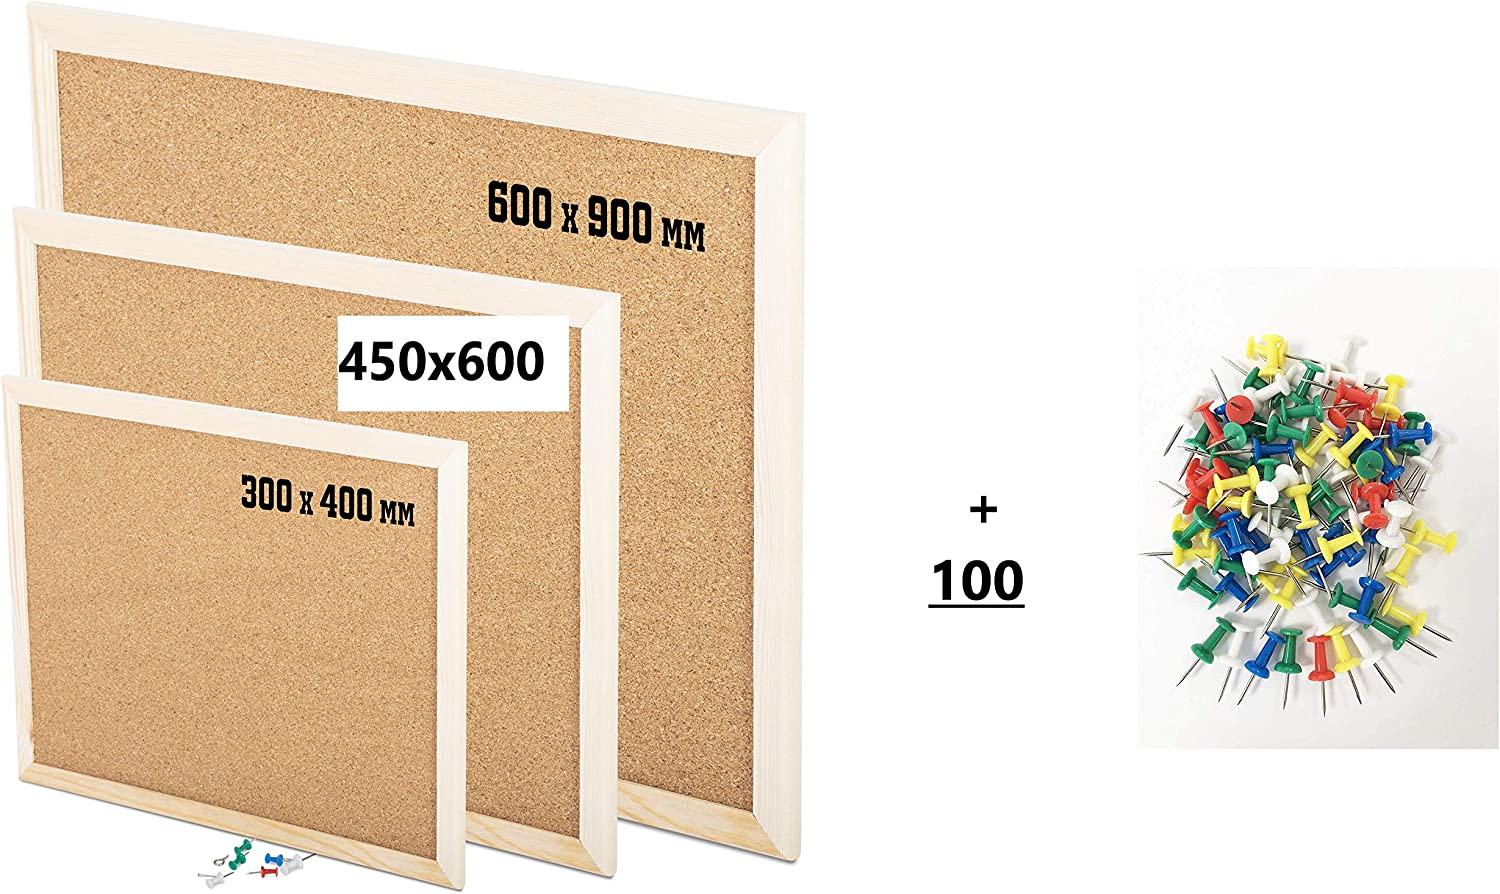 60CM x 90CM 600MM x 900MM Choose size from Drop Down KAV Wooden Frame Cork Notice Boards Office Memo School with 100 Push Pins Classic Wood Frame Board